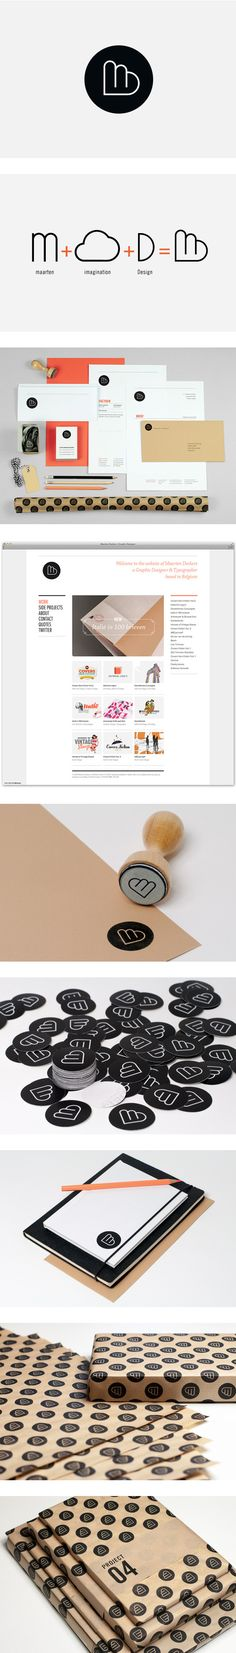 Branding Maarten Deckers by Maarten Deckers, via Behance